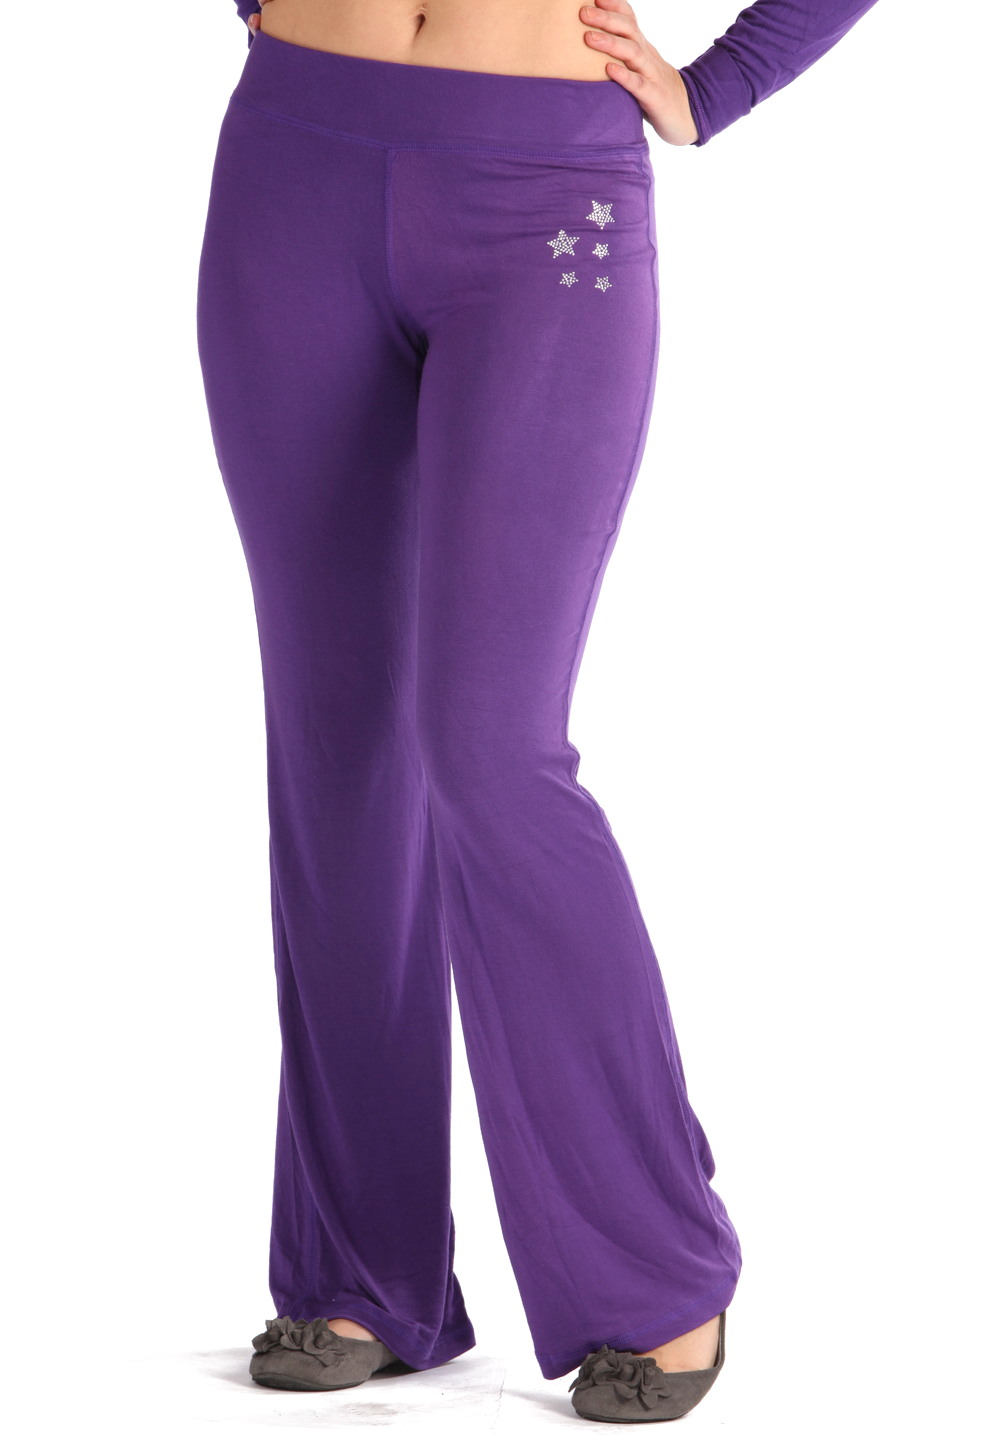 Unique  Apparel Women39s Purple Cotton Spandex Jersey Straight Leg Yoga Pants